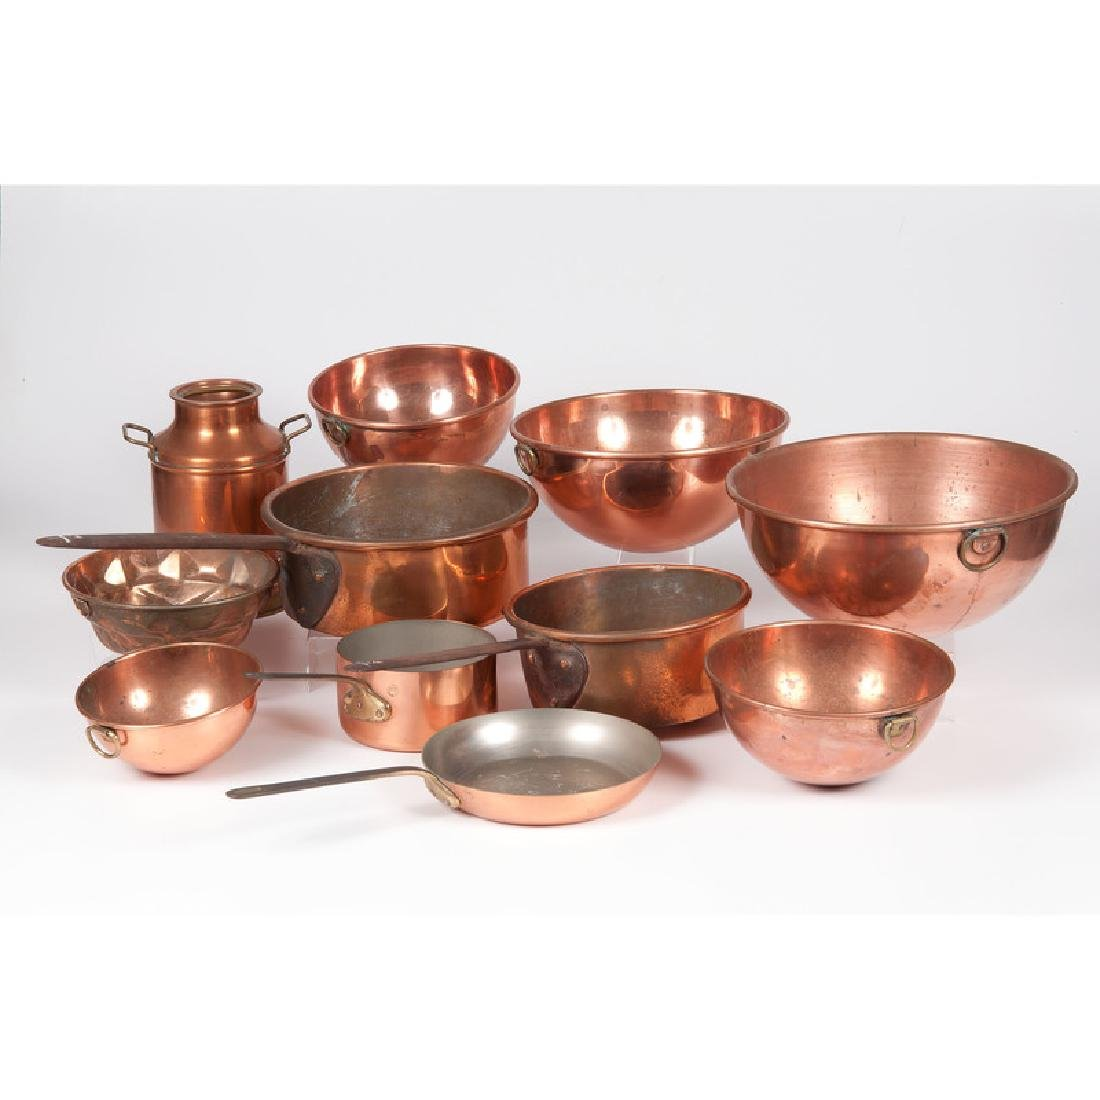 Copper Bowls and Pans